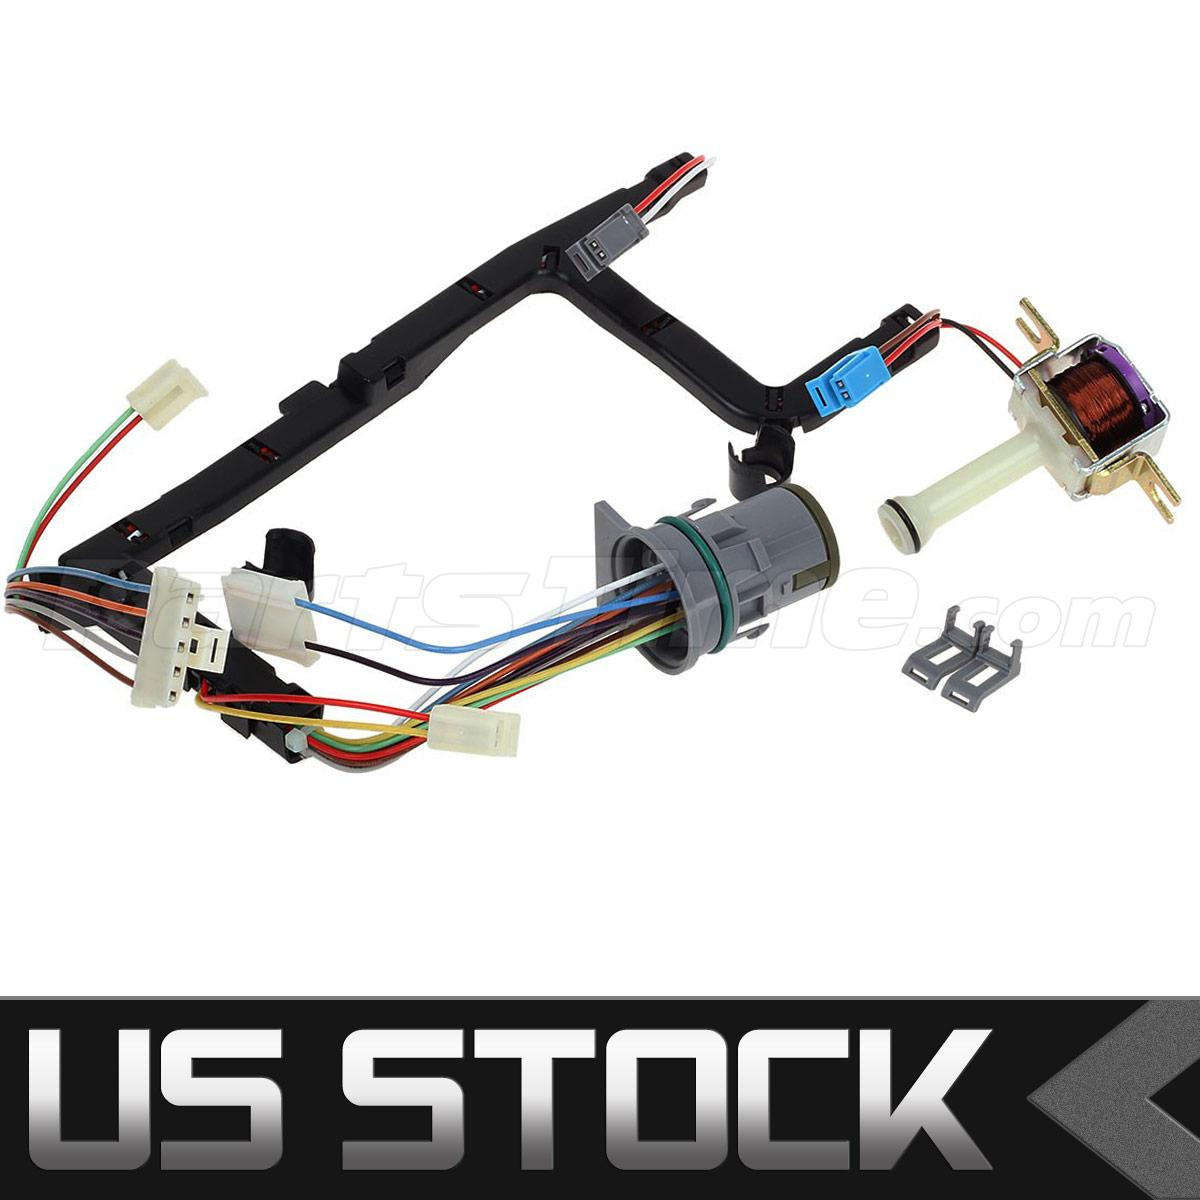 142072 2?p=ZGVhbGNsaWNr&s=t&rn=3592325 transmission 4l60e tcc look up solenoid with internal wire harness 4l60e internal wiring harness at couponss.co